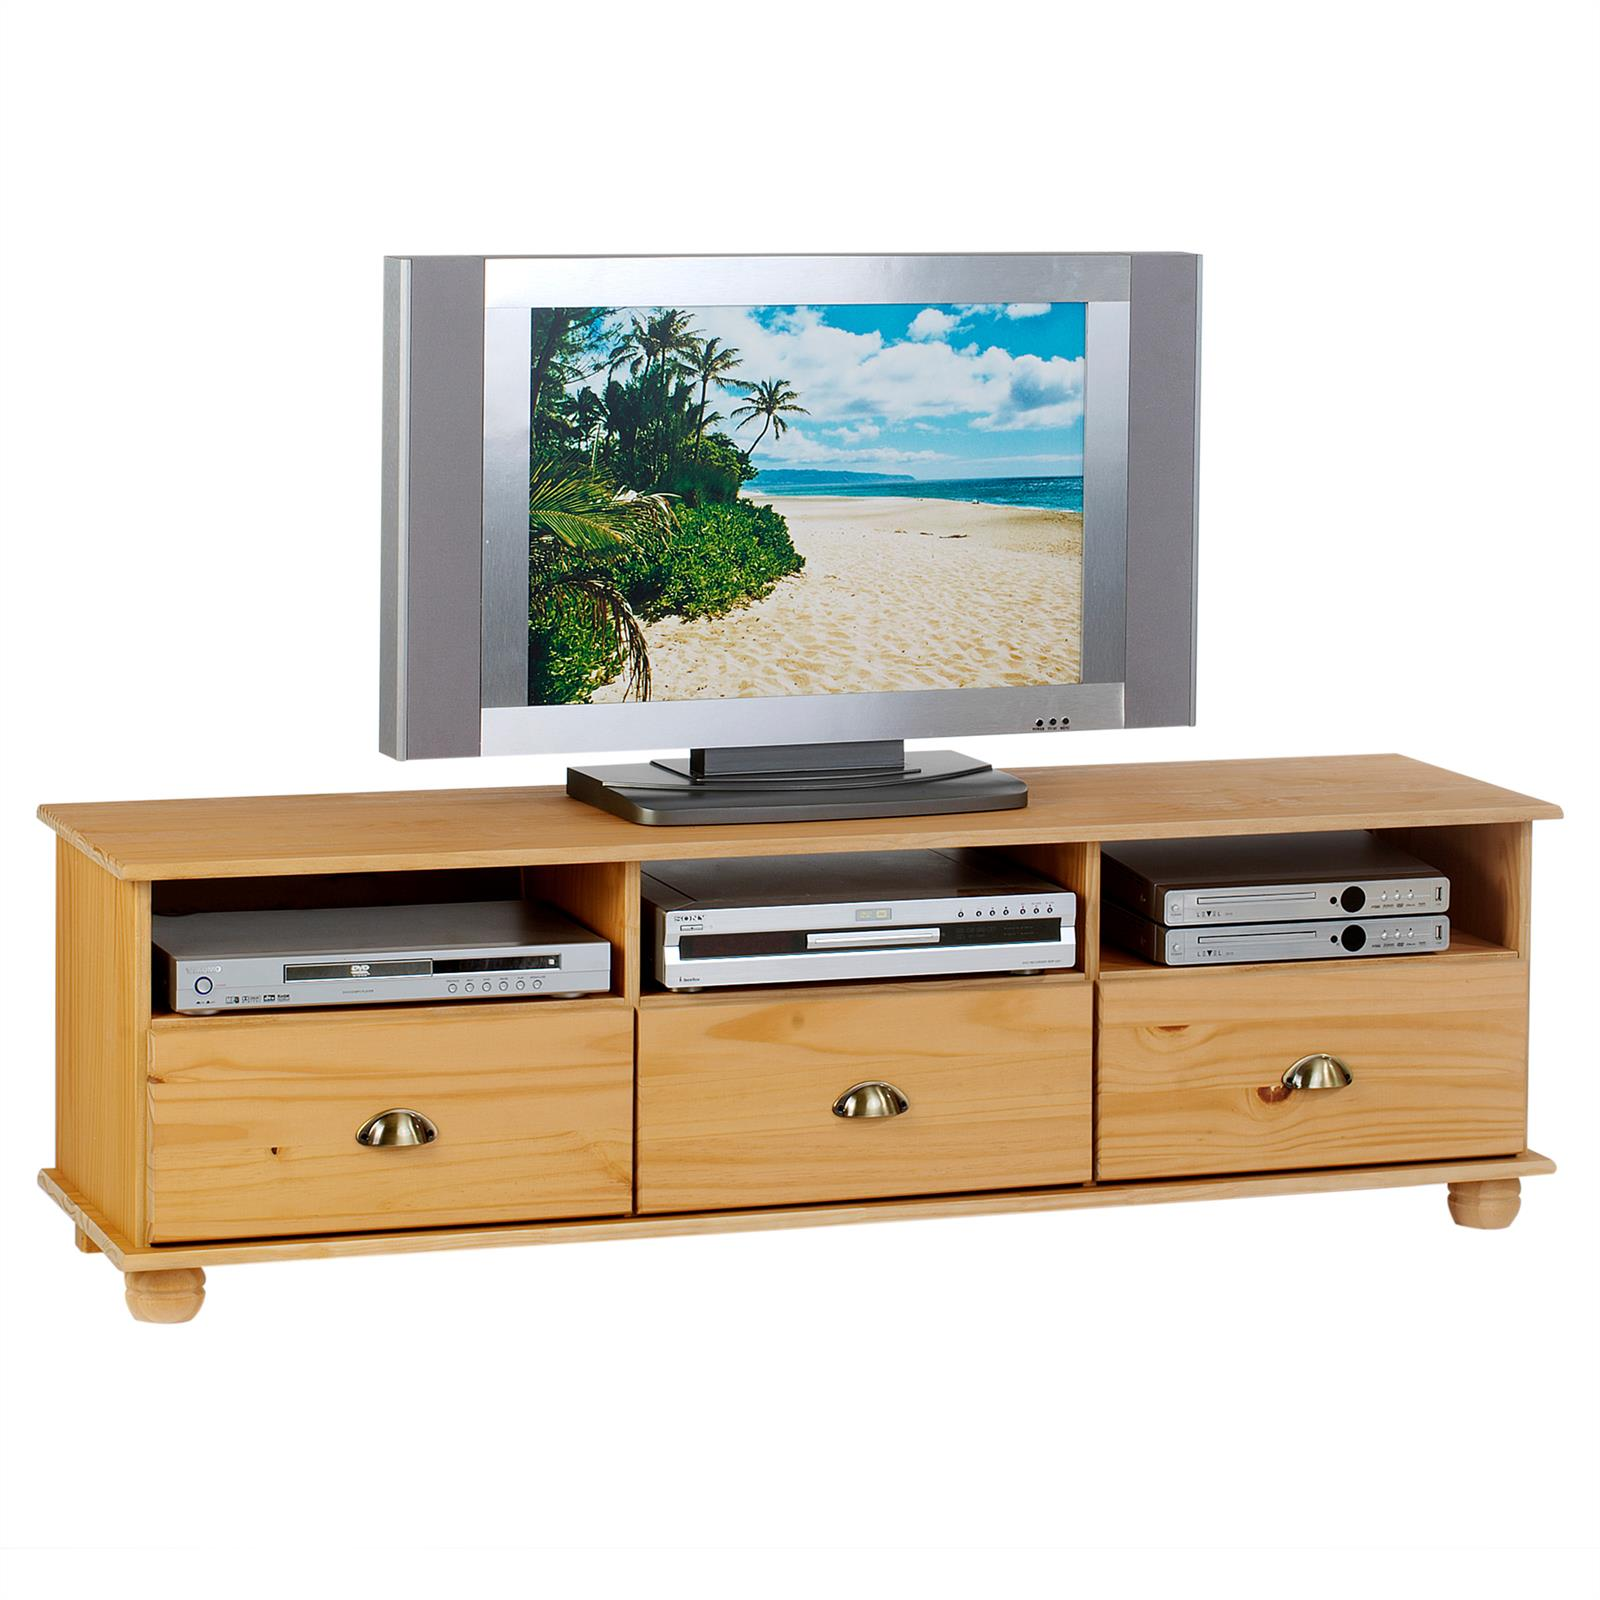 lowboard tv m bel hifi m bel fernsehkommode fernsehschrank massiv ebay. Black Bedroom Furniture Sets. Home Design Ideas